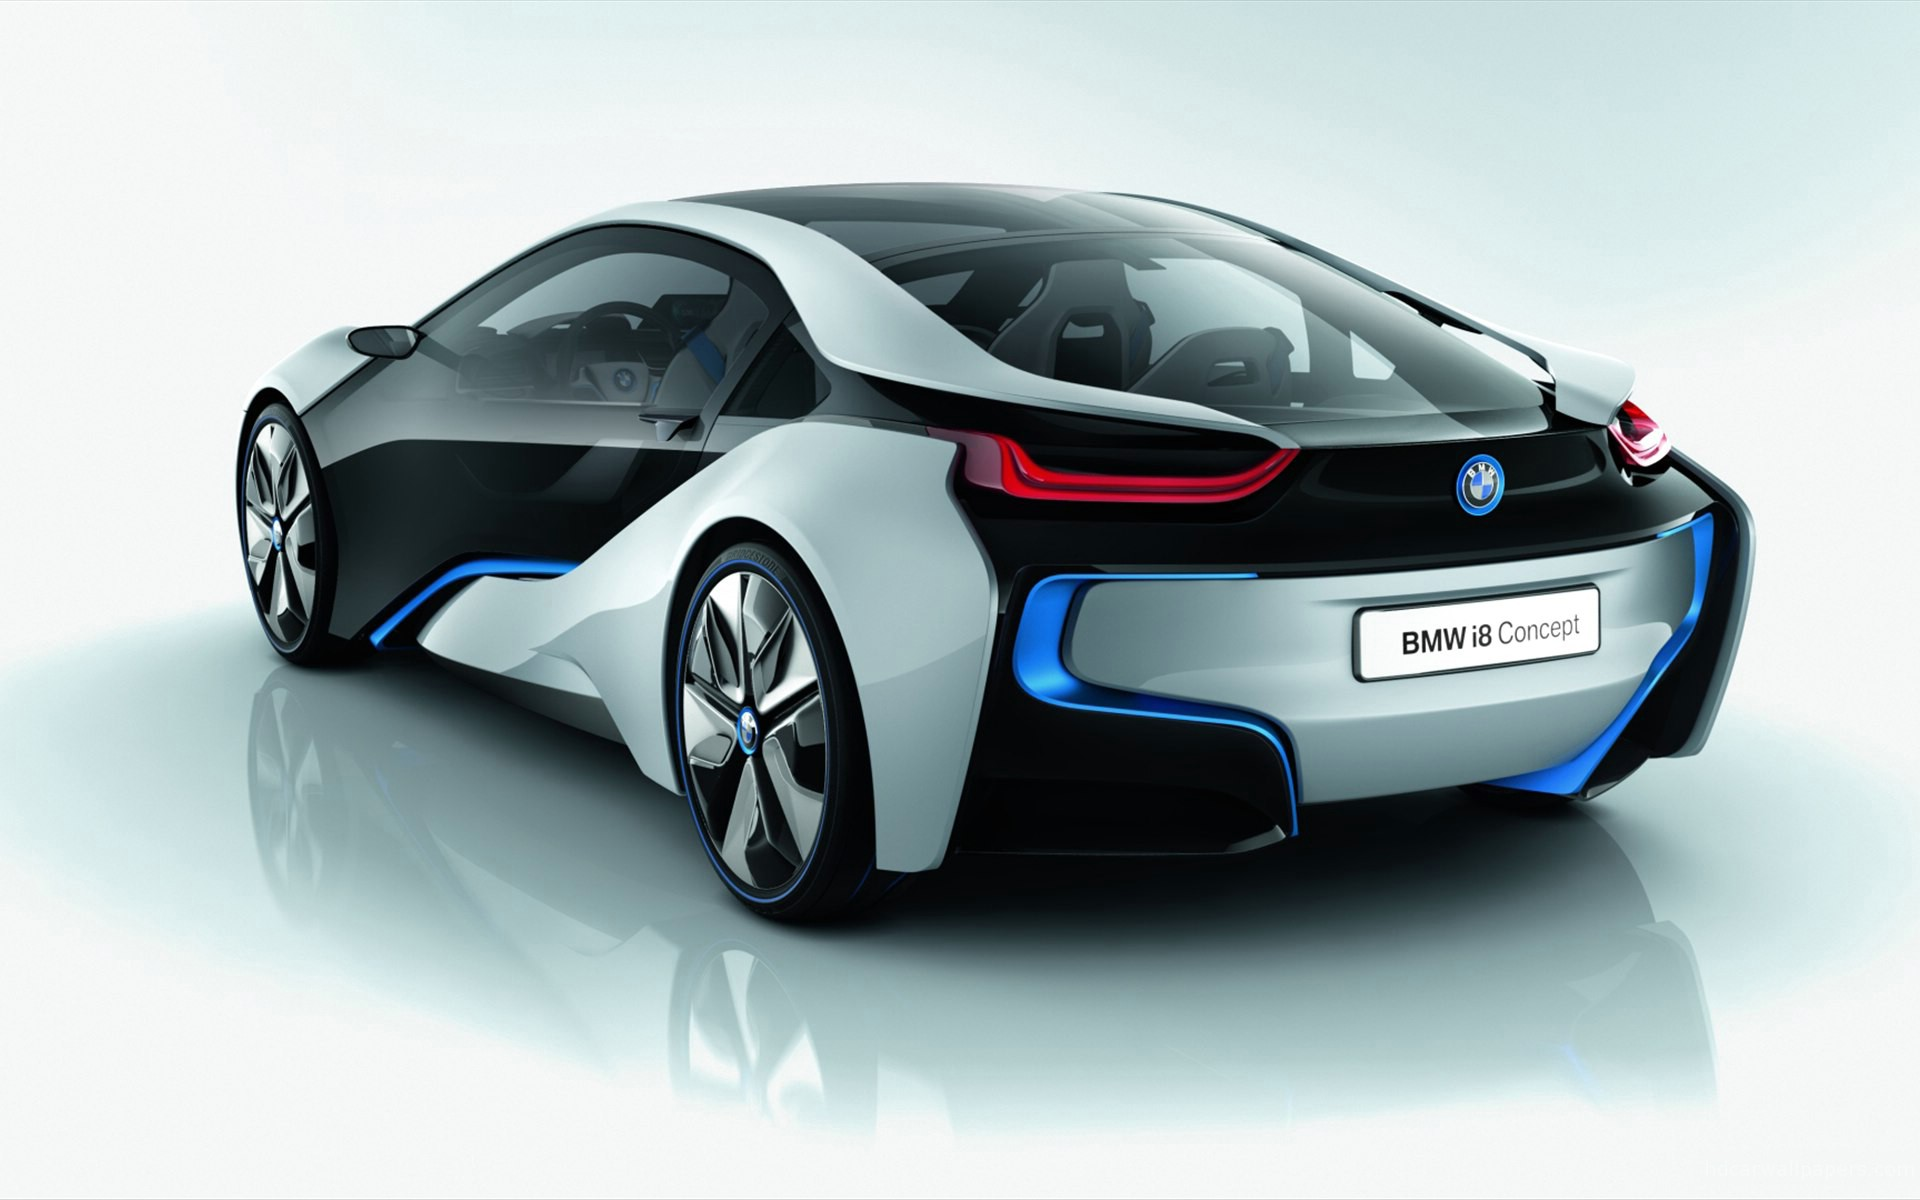 2012 bmw i8 concept 6 wallpaper hd car wallpapers id 2158. Black Bedroom Furniture Sets. Home Design Ideas